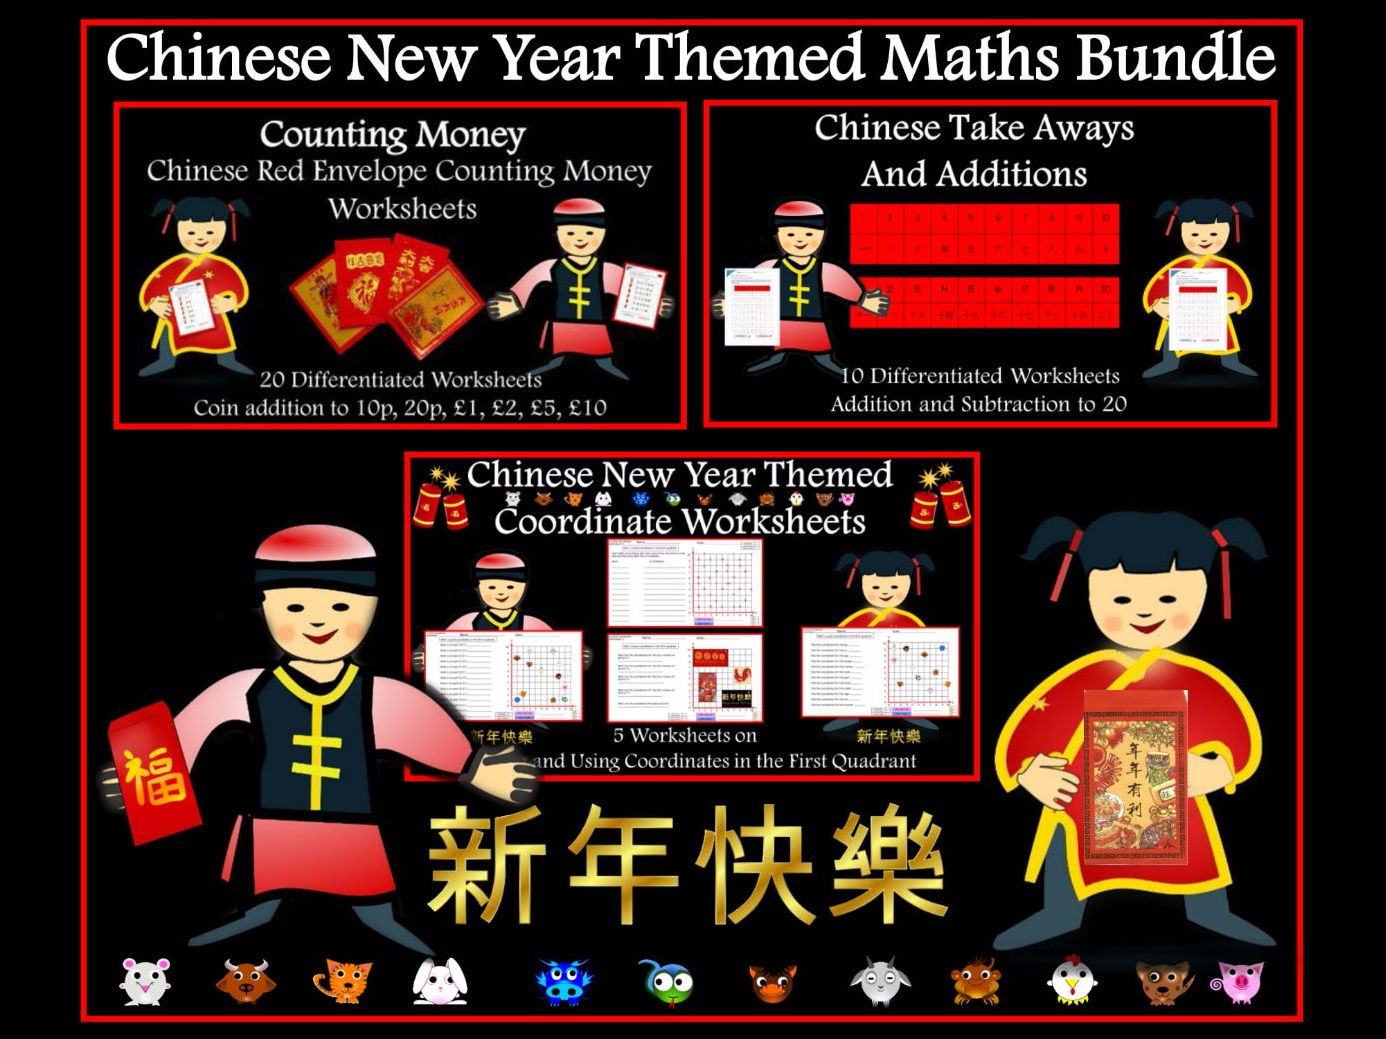 Chinese New Year Themed Maths Bundle - Locating Coordinates in First Quadrant - Chinese Take Aways and Addition to 20, - Counting and adding Money